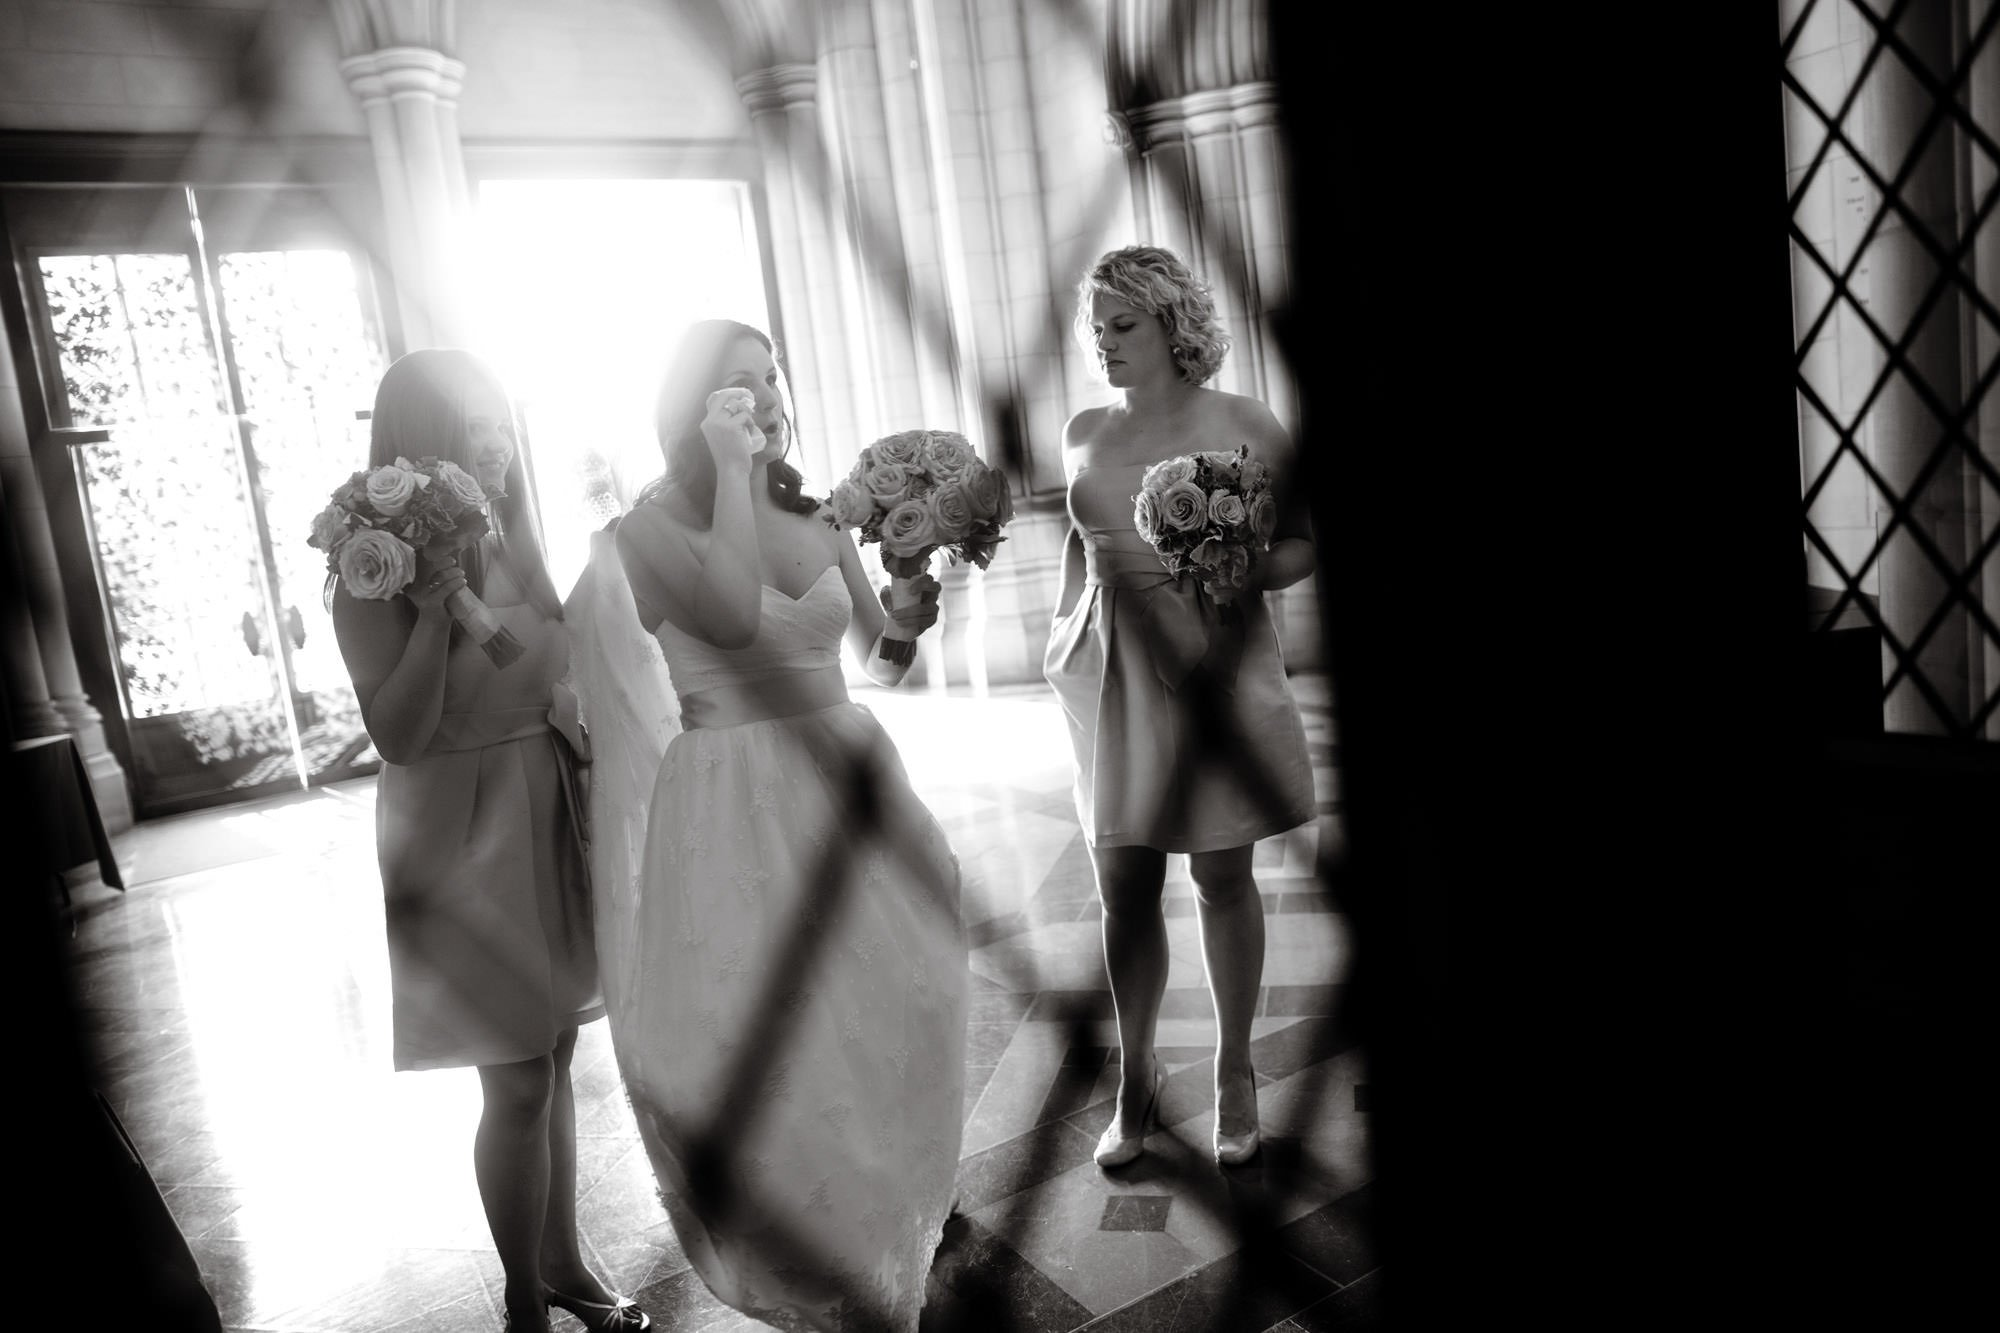 The bride waits for the ceremony to begin on her Washington National Cathedral wedding day.